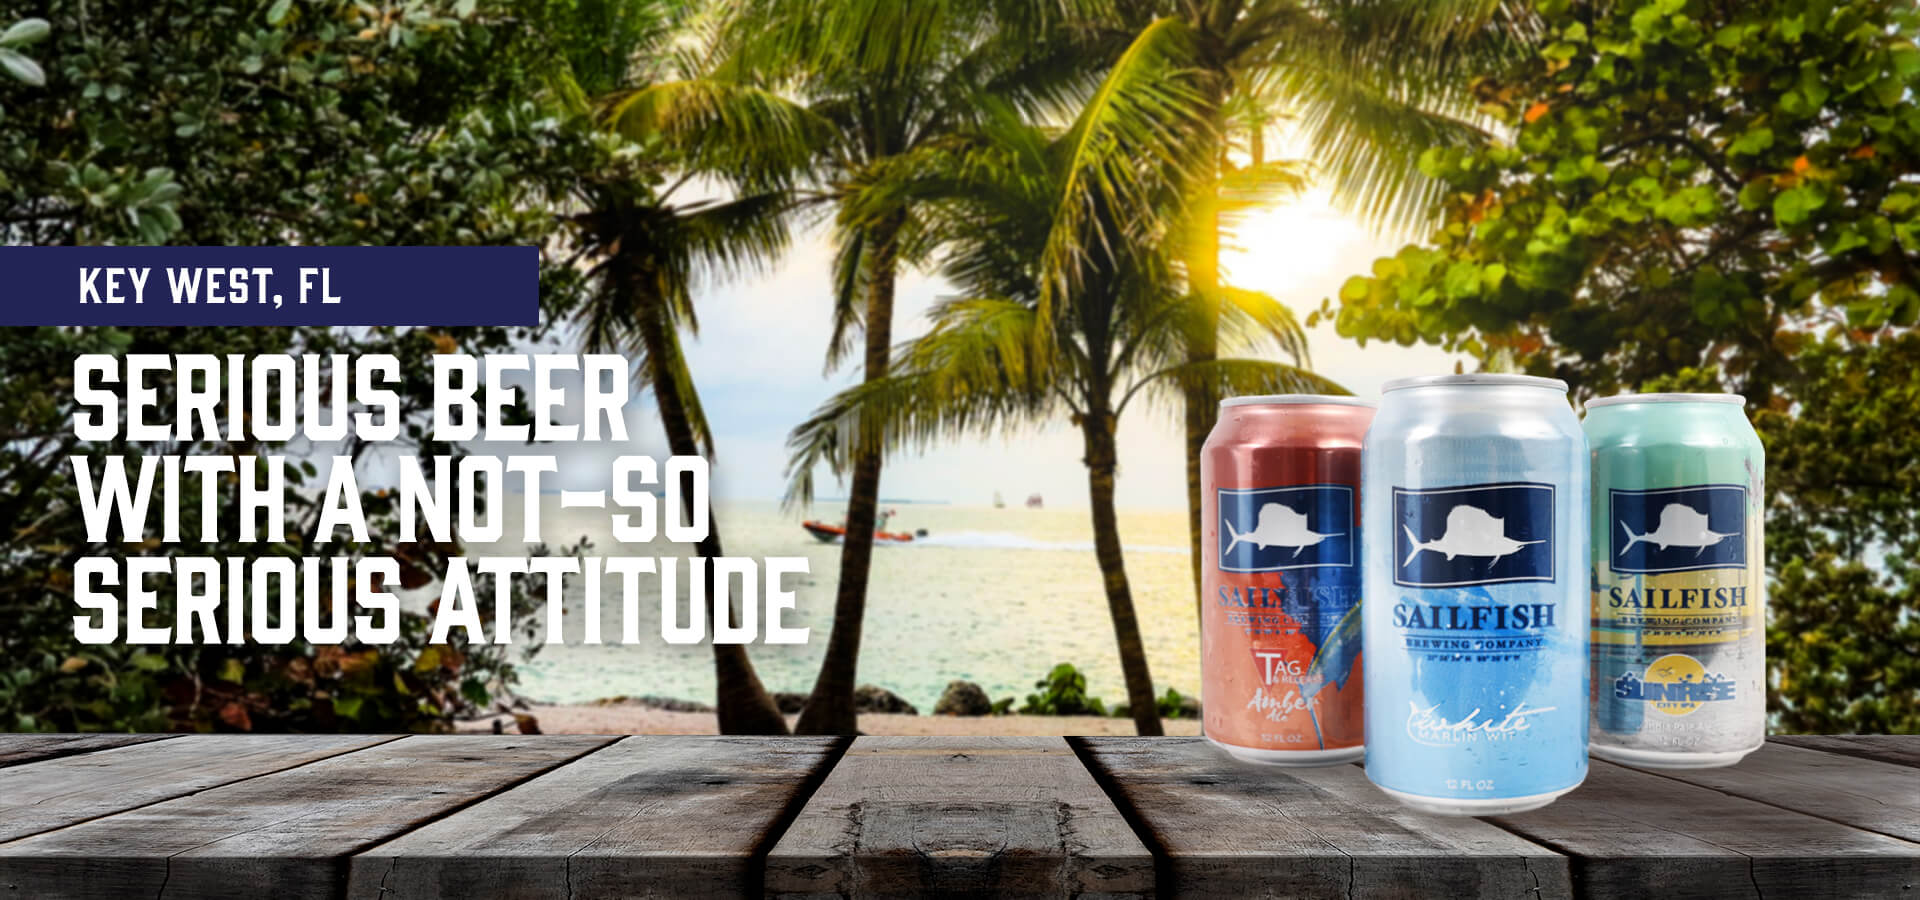 Sailfish Brewery Cans in Key West